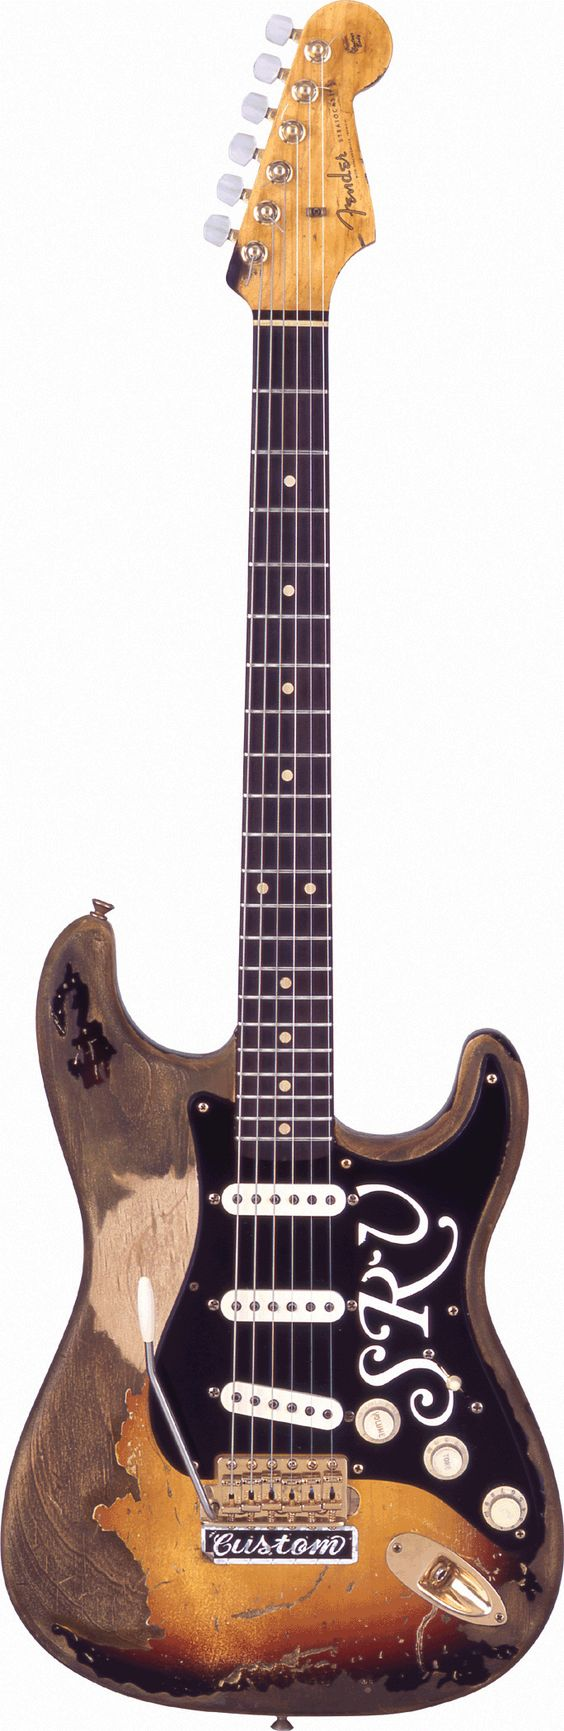 Fender Stevie Ray Vaughan 1 Replica Stratocaster If You